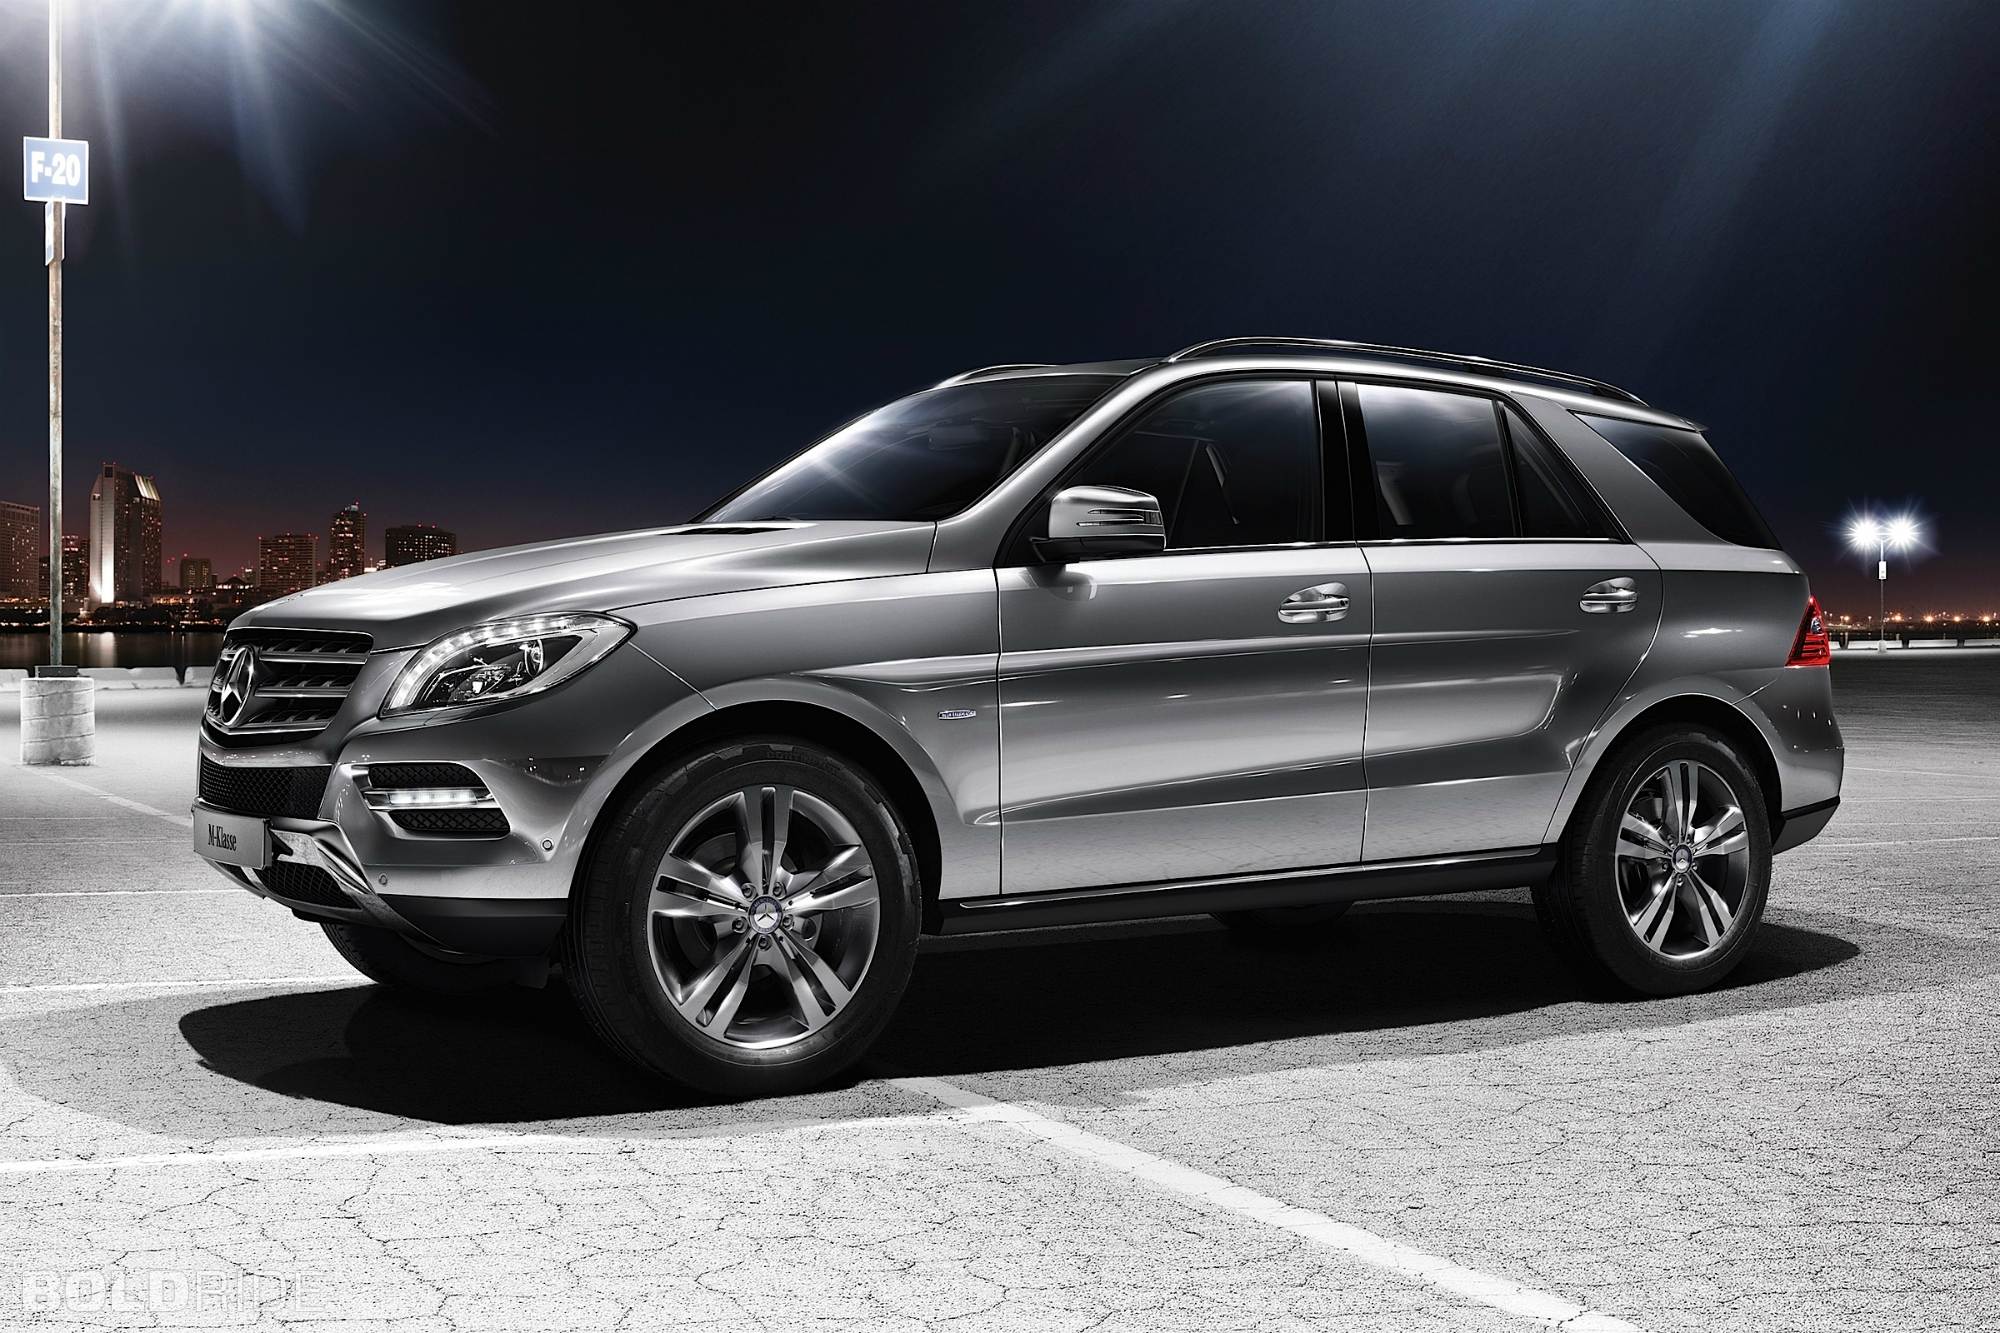 Mercedes benz ml 500 technical details history photos on for Mercedes benz cherry hill parts